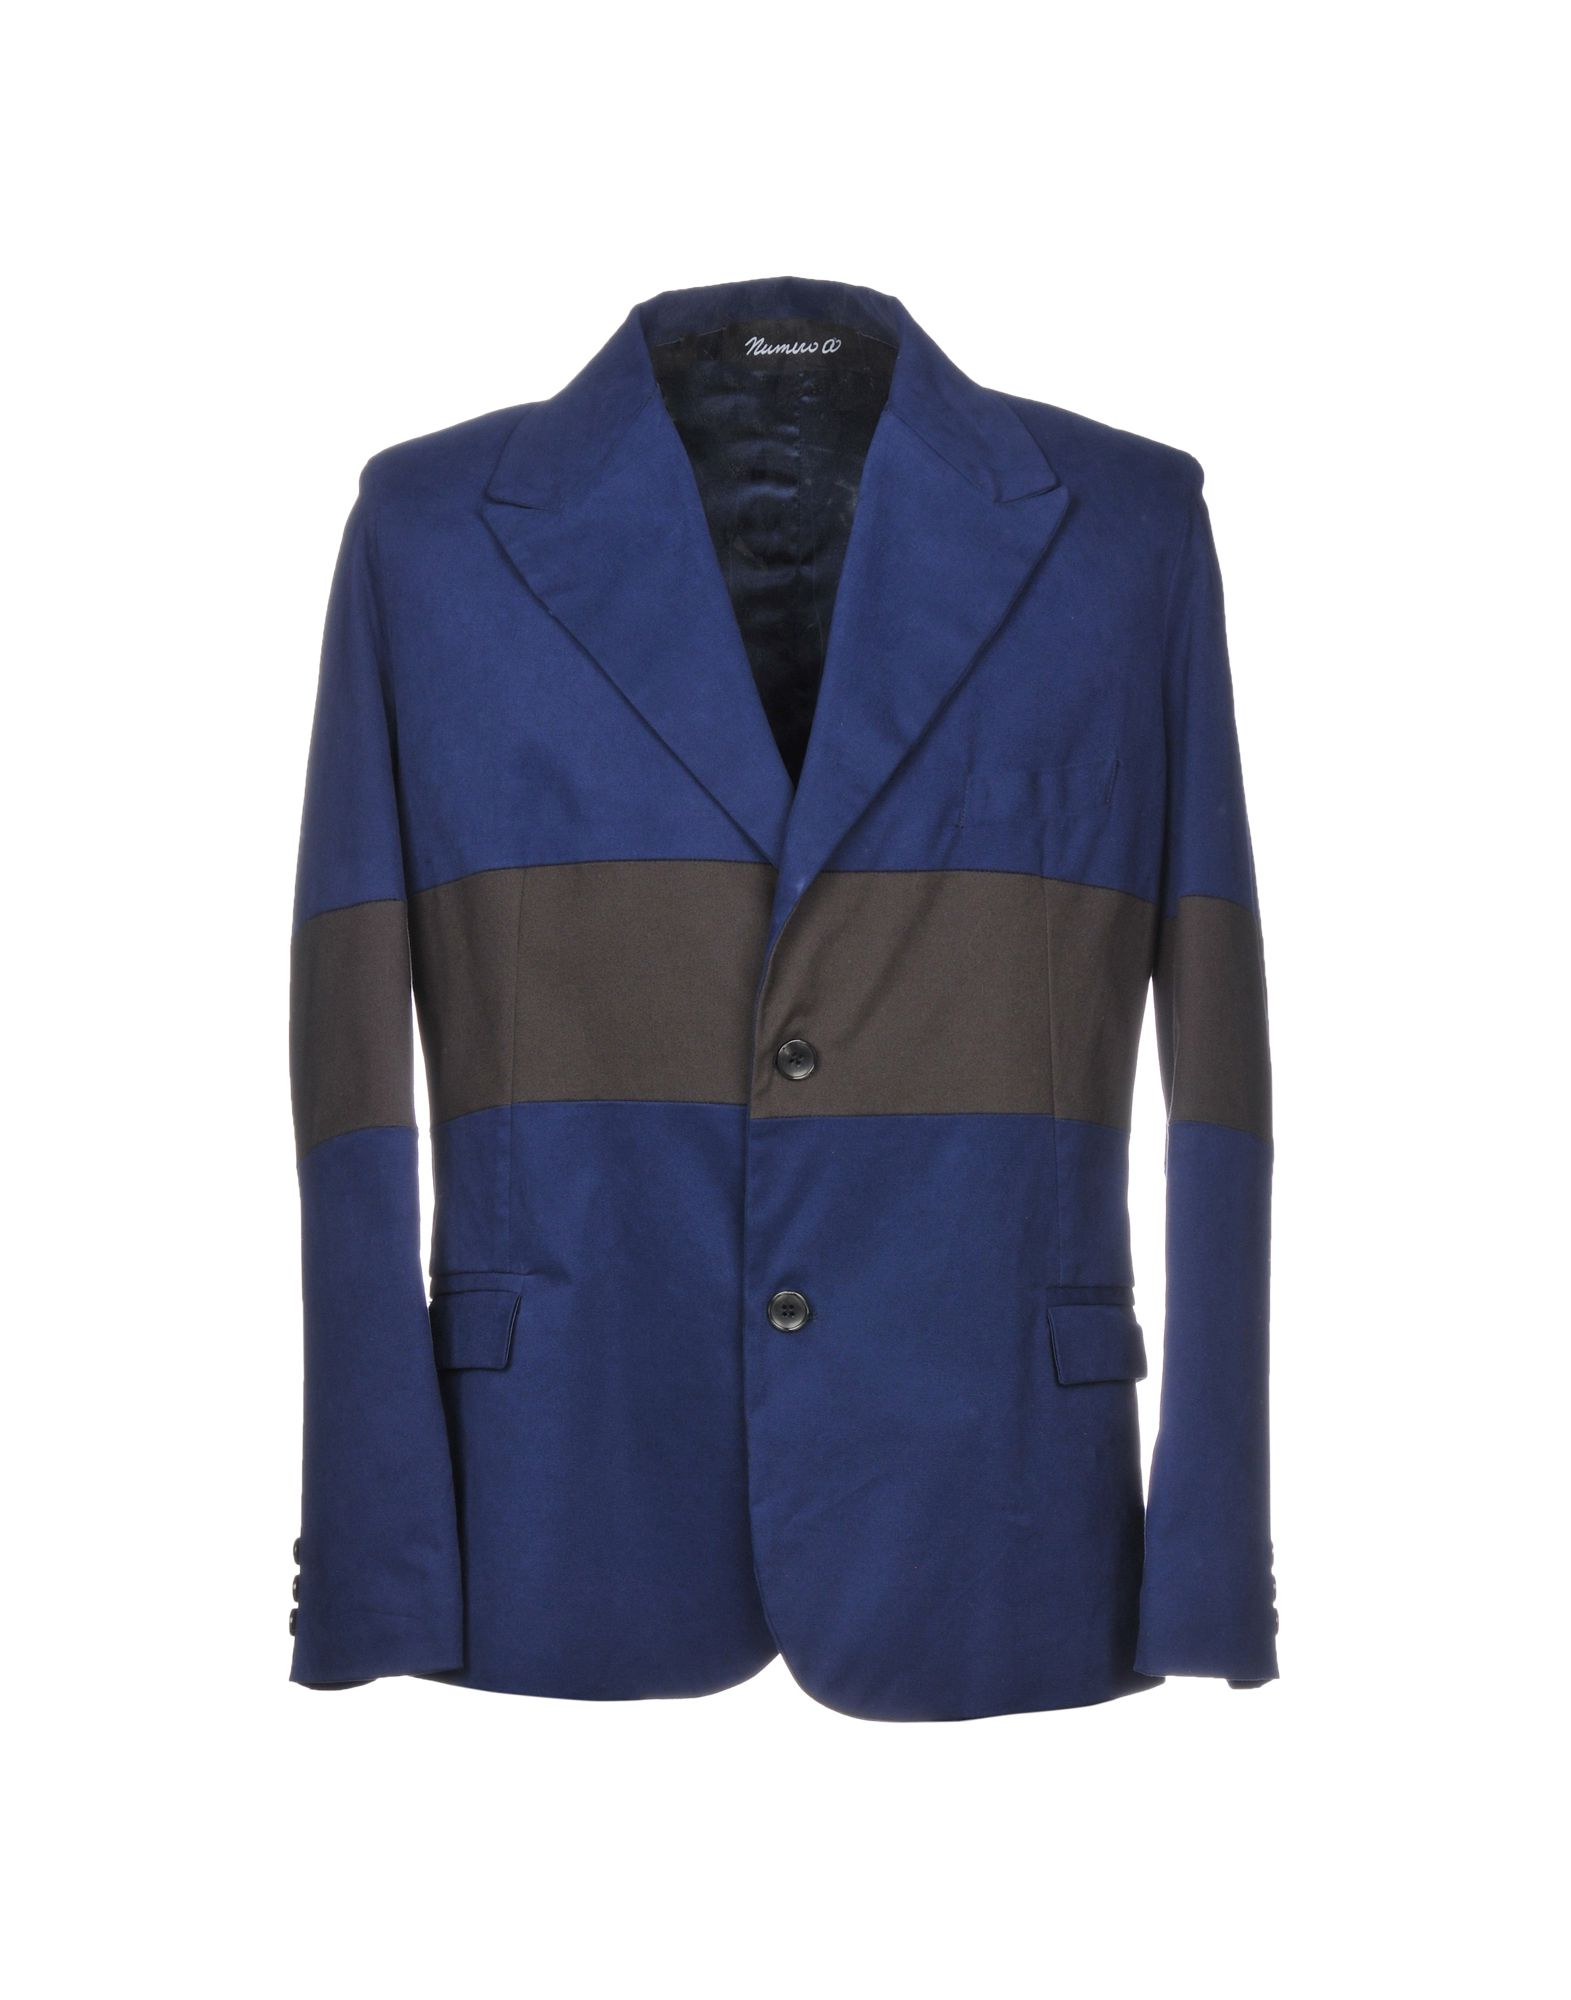 NUMERO00 Blazer in Dark Blue